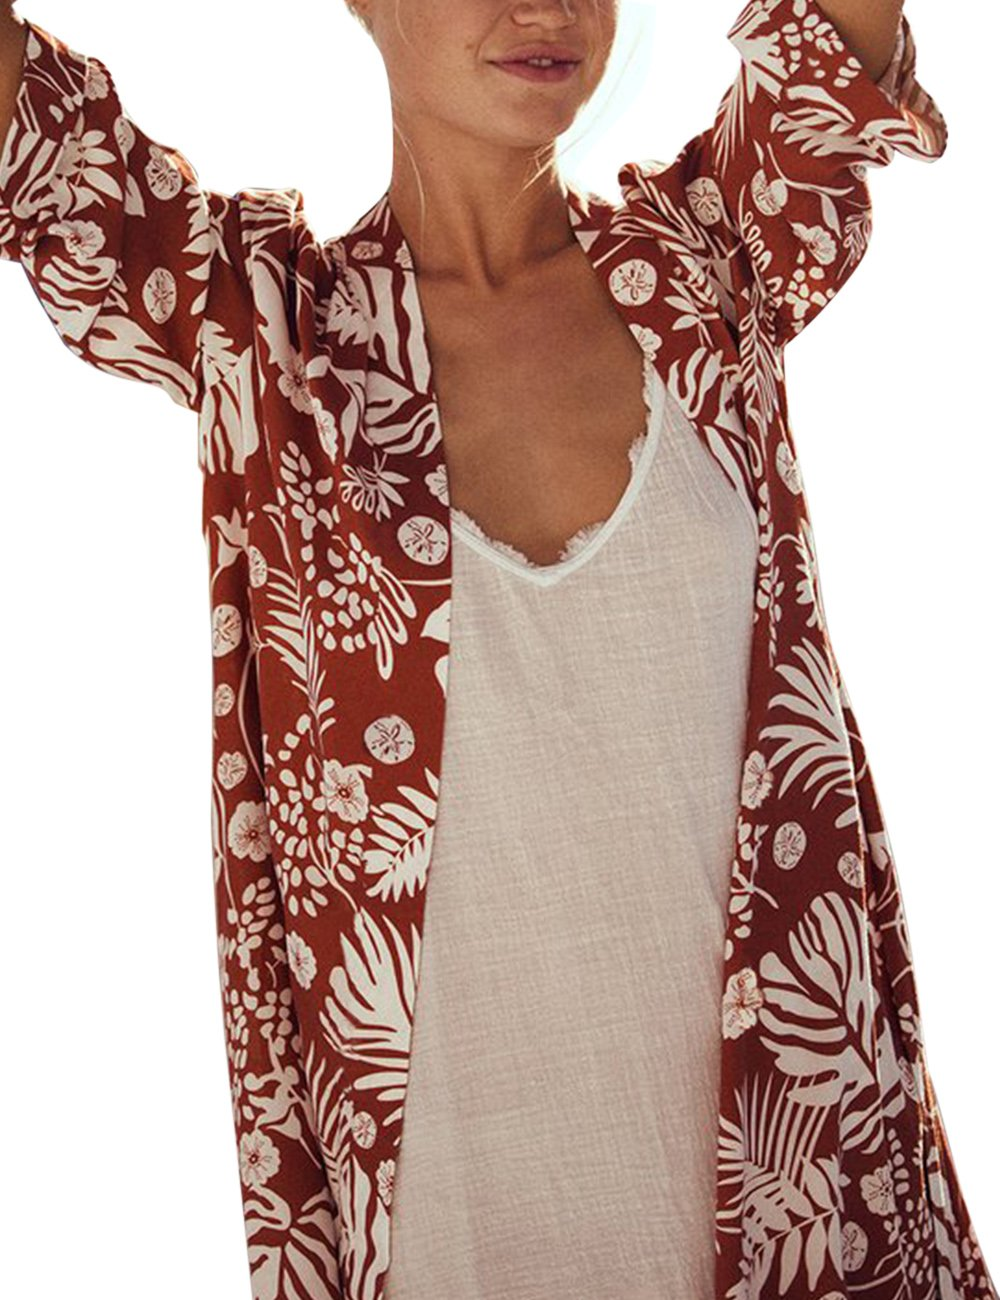 shermie Women's Floral Leaf Print Kimono Cardigan Cover up Swimwear with Belt Rust Red by shermie (Image #2)